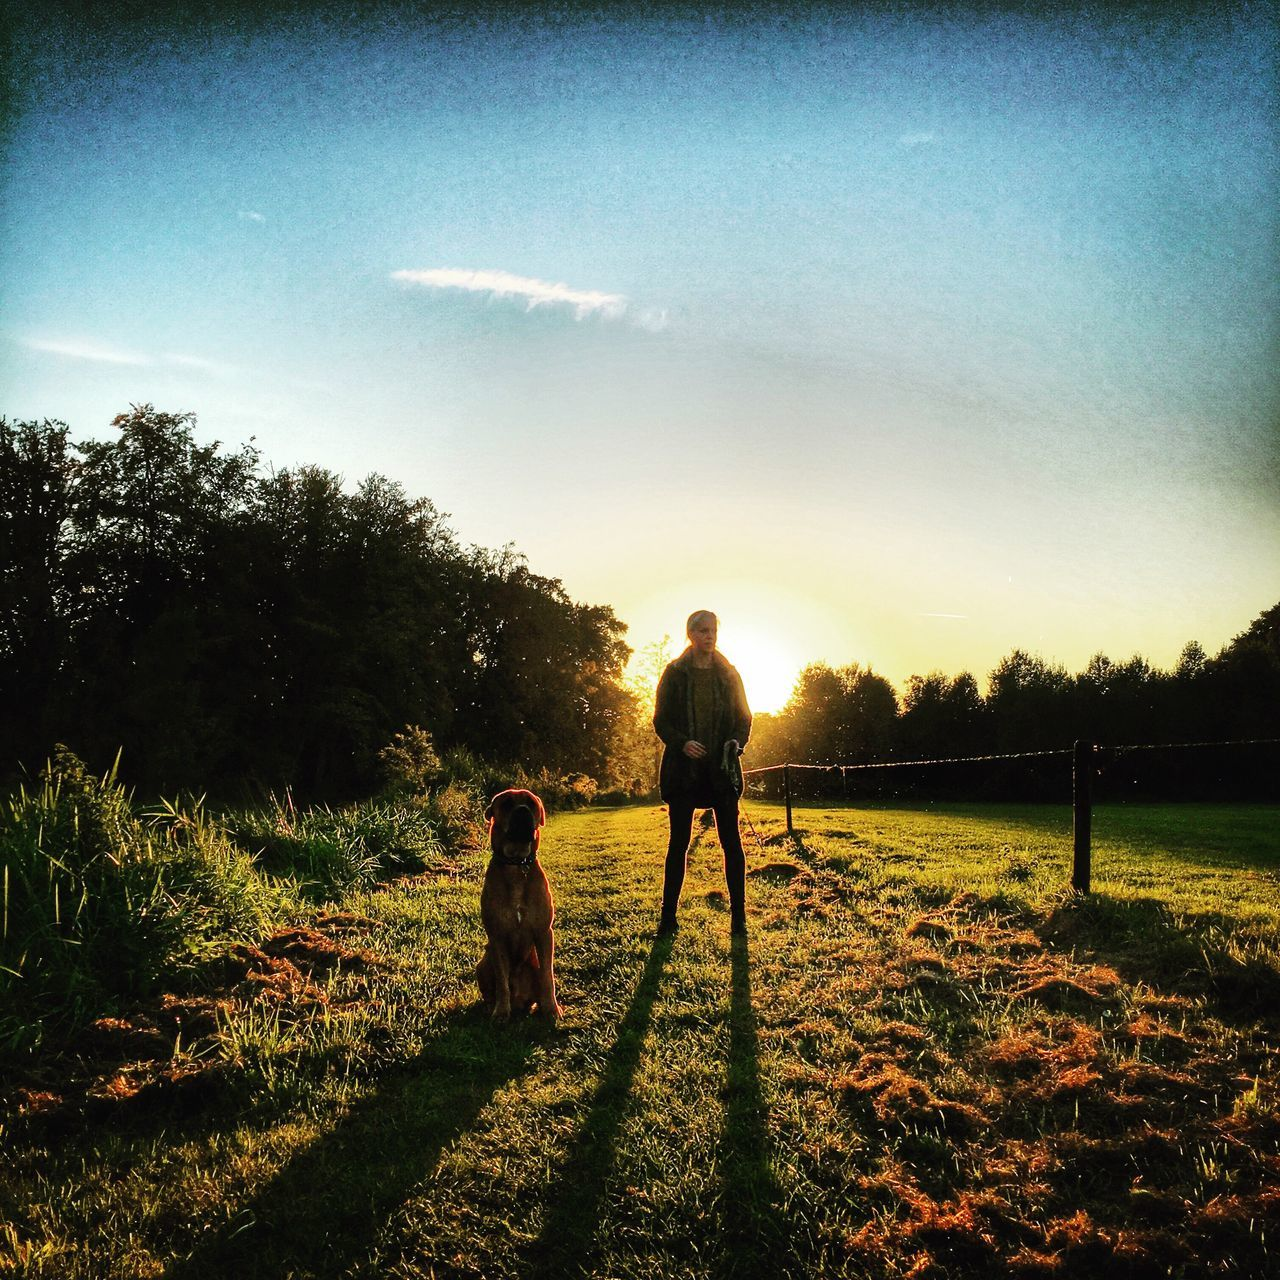 tree, field, two people, grass, full length, sunset, silhouette, sky, childhood, real people, outdoors, nature, dog, togetherness, boys, men, day, beauty in nature, people